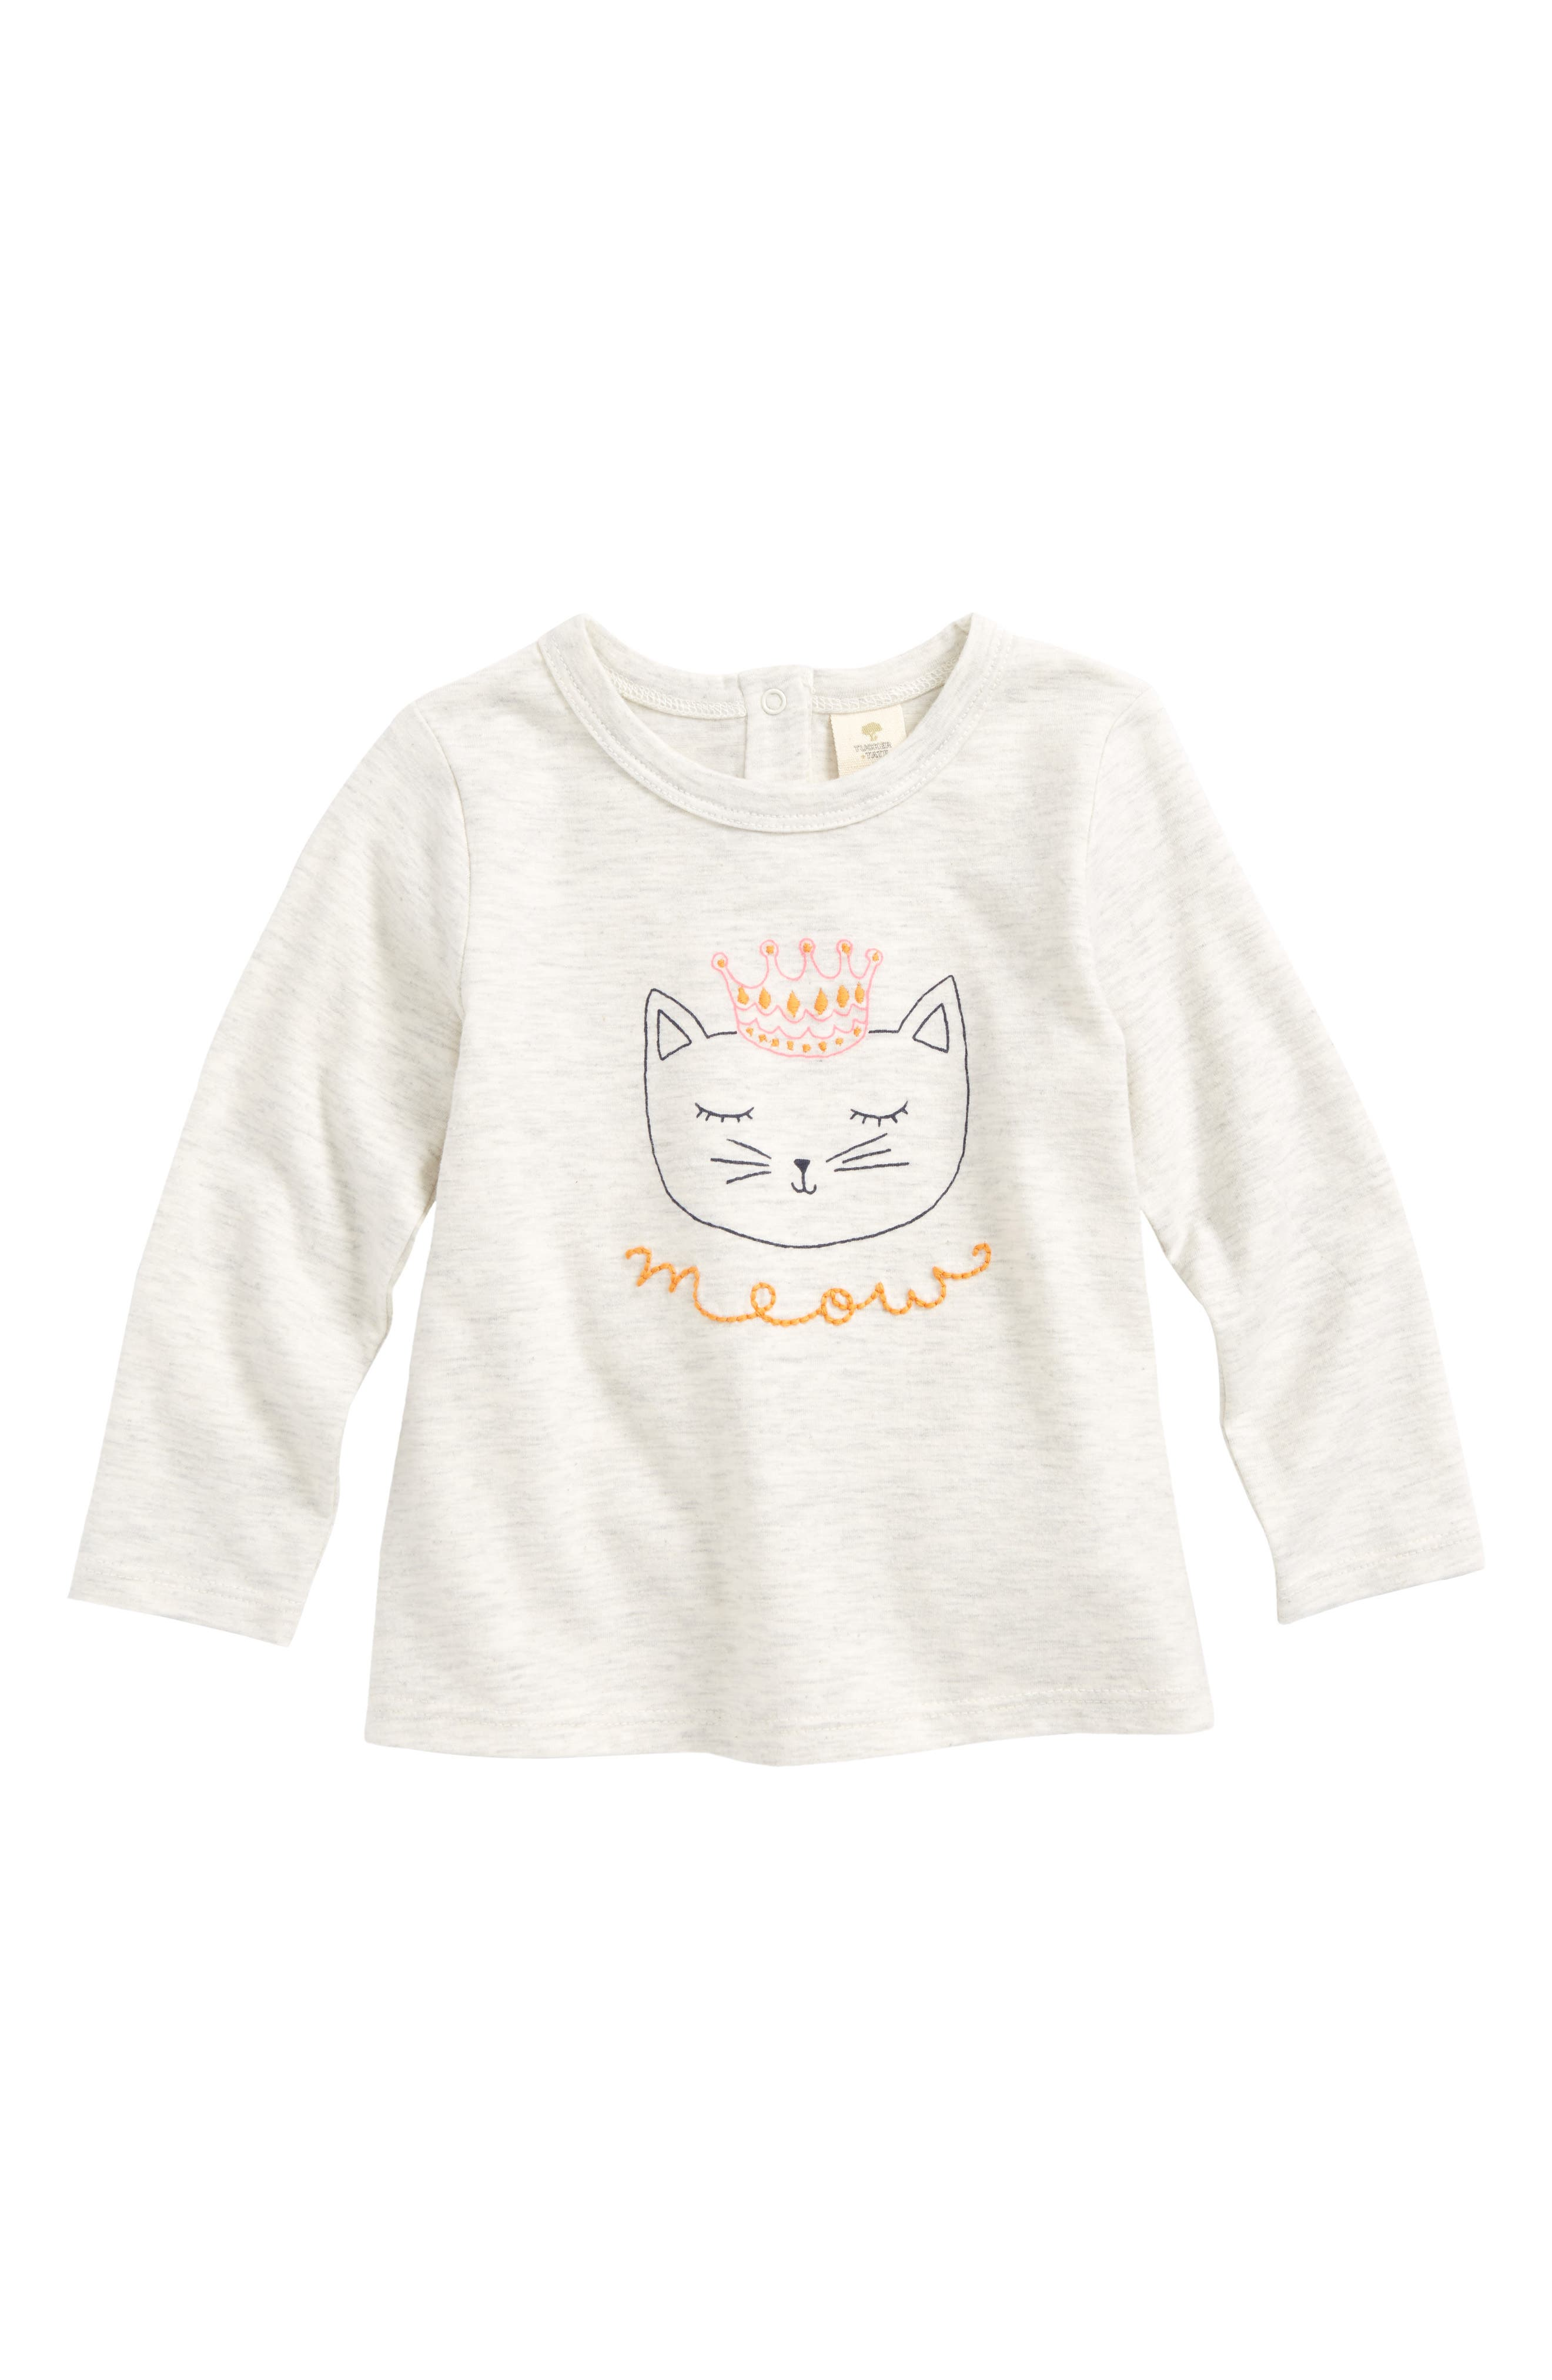 Alternate Image 1 Selected - Tucker + Tate Embroidered Graphic Tee (Baby Girls)